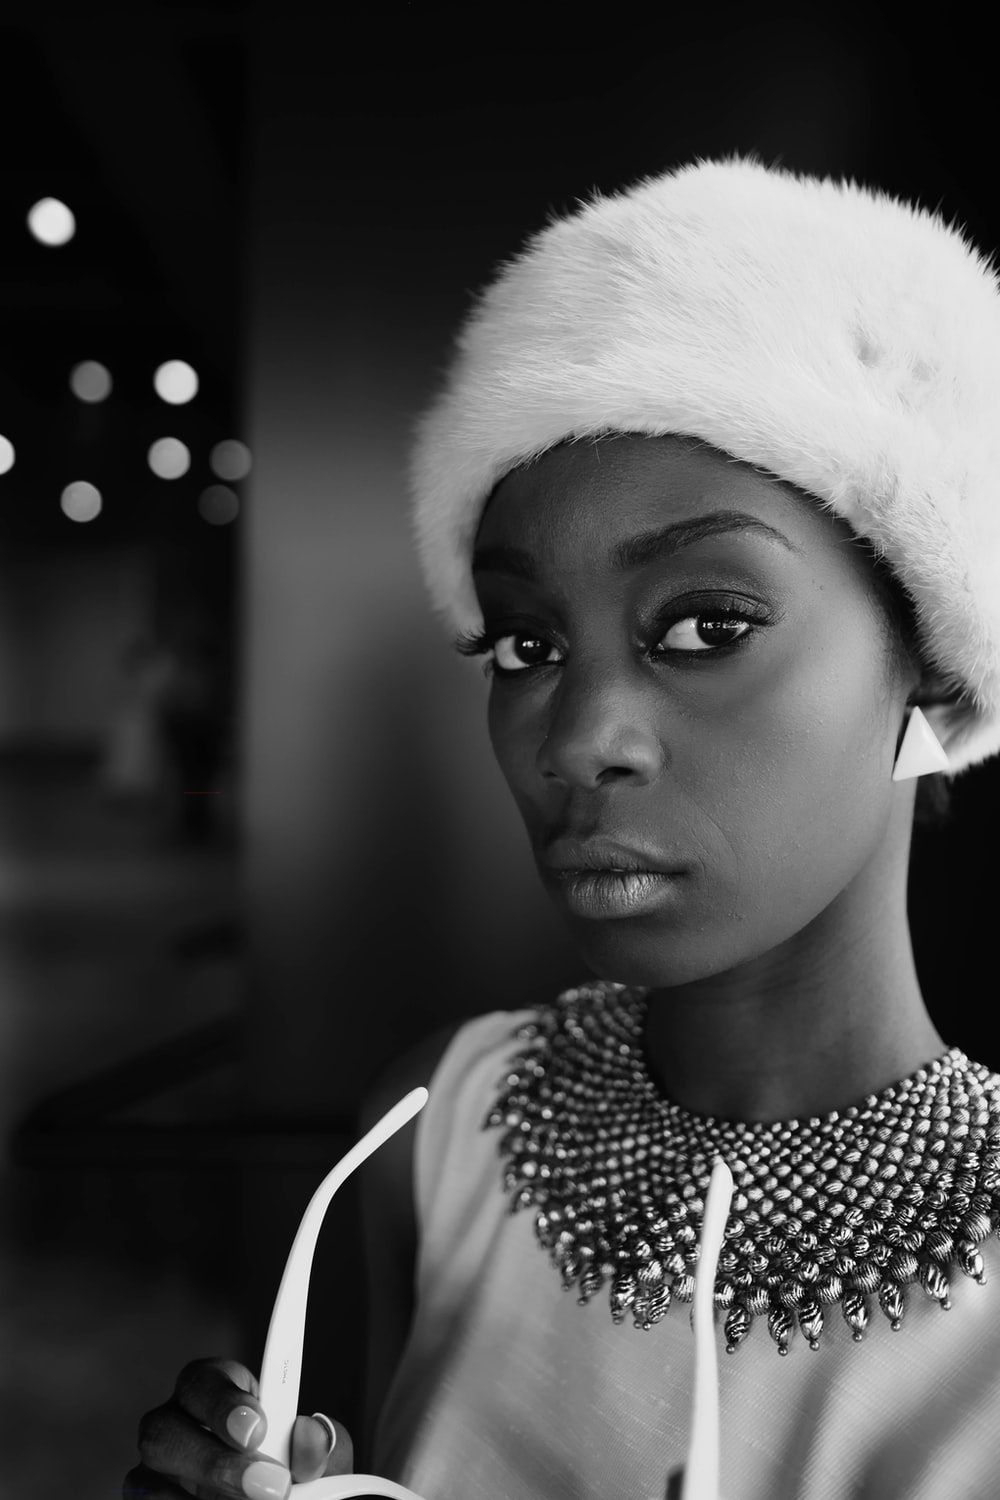 A black-and-white shot of a young woman in a furry cap